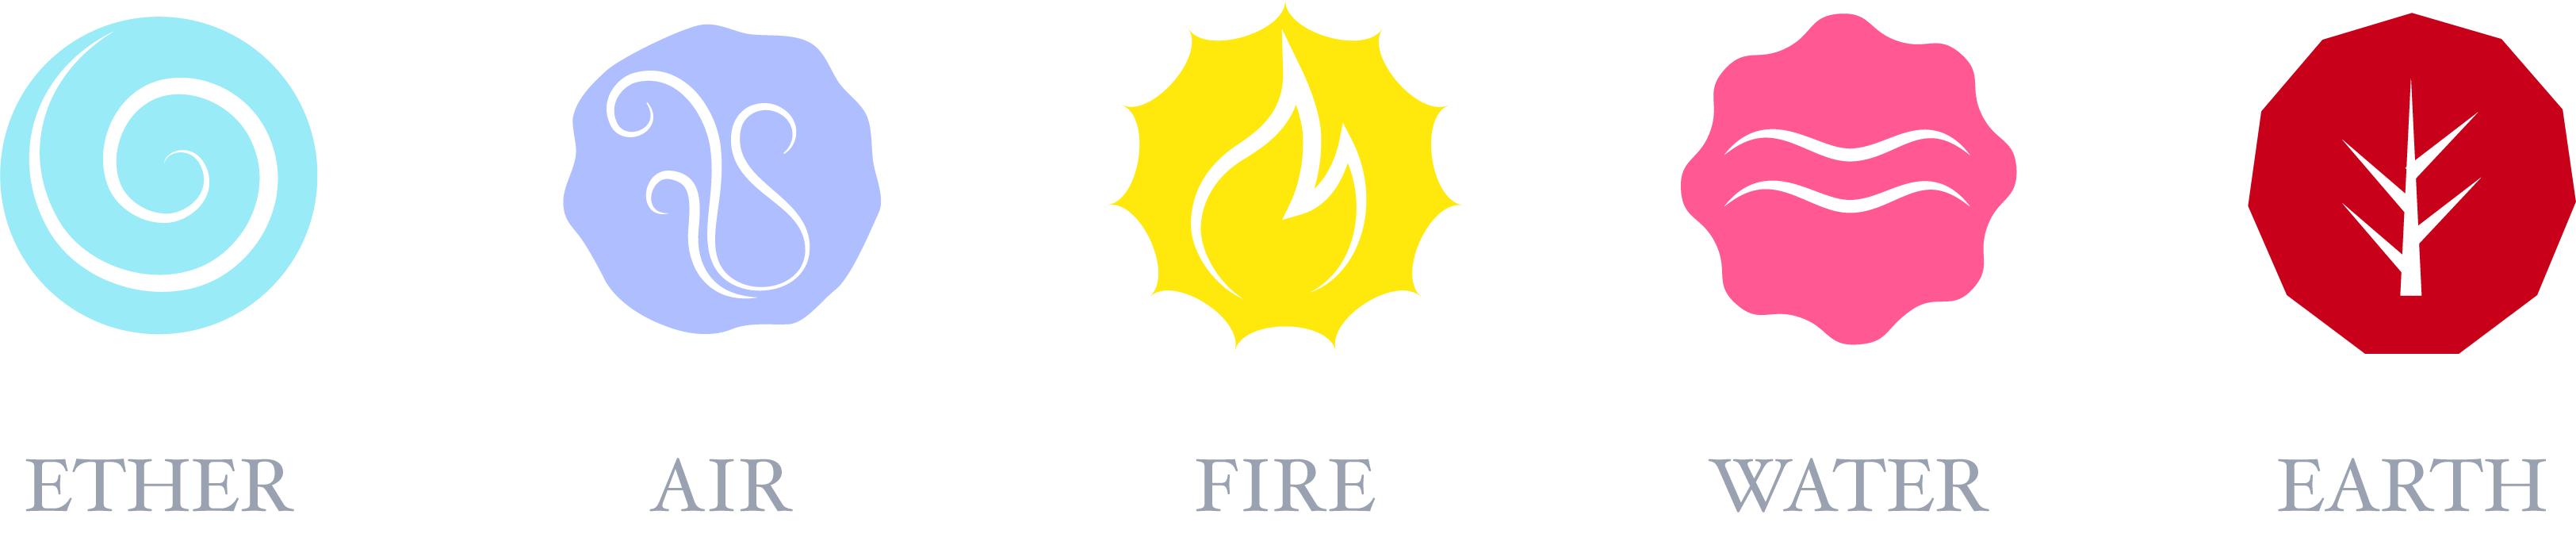 Five Elements - Earth, Water, Fire, Air & Ether